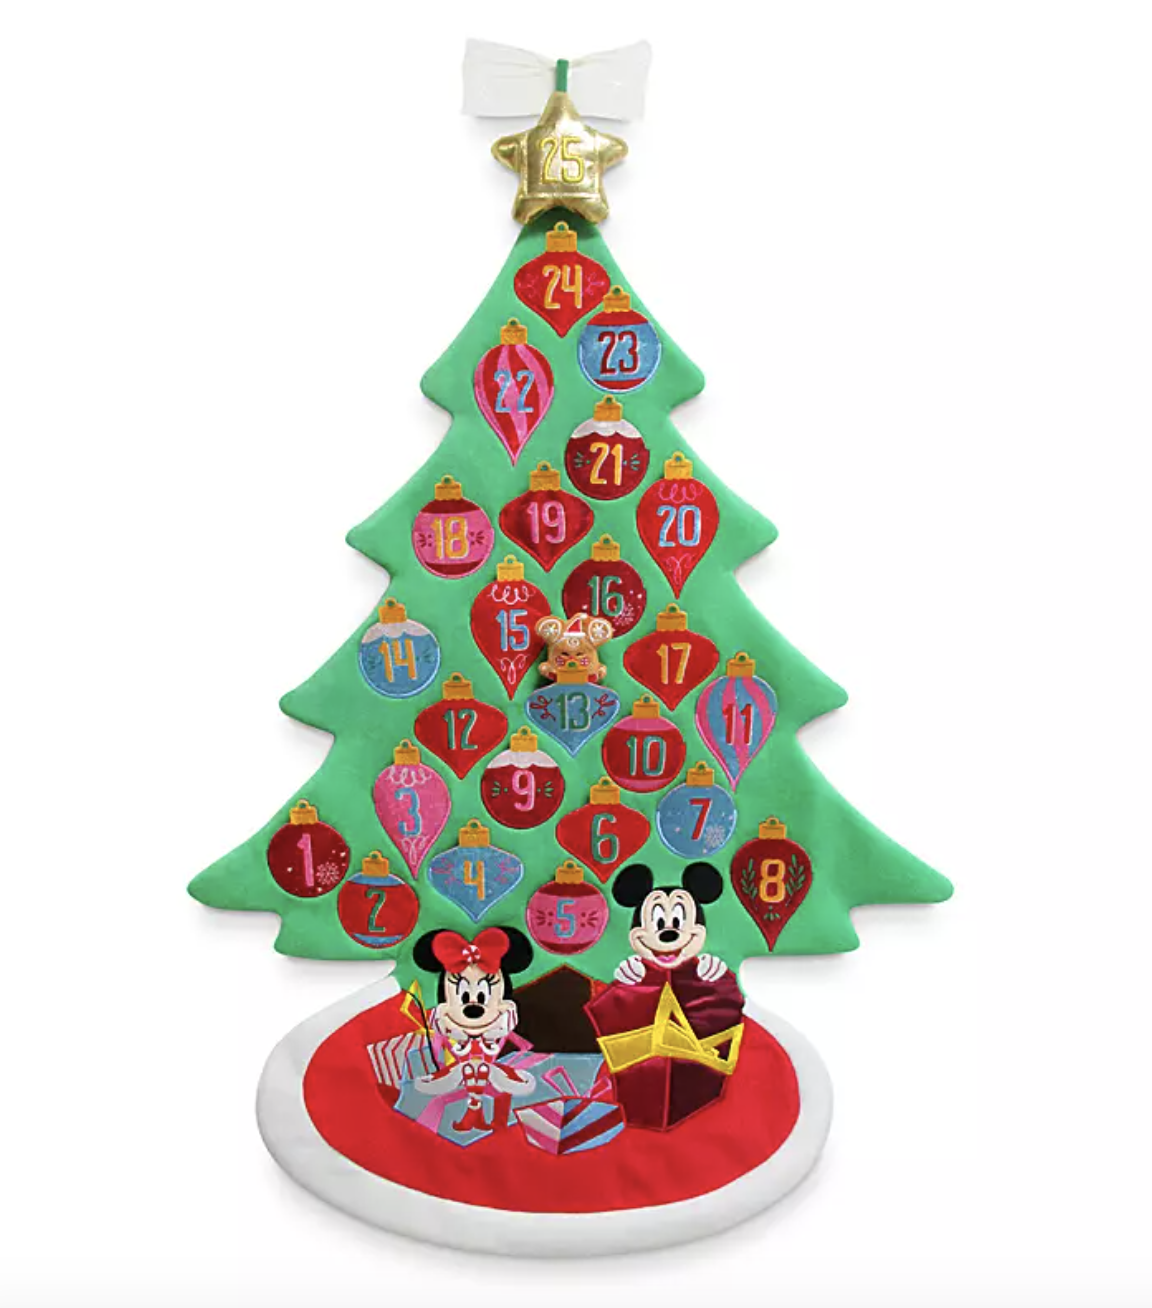 the felt green tree with retro-styled ornaments on it that double as pockets with mickey and minnie sitting beneath it